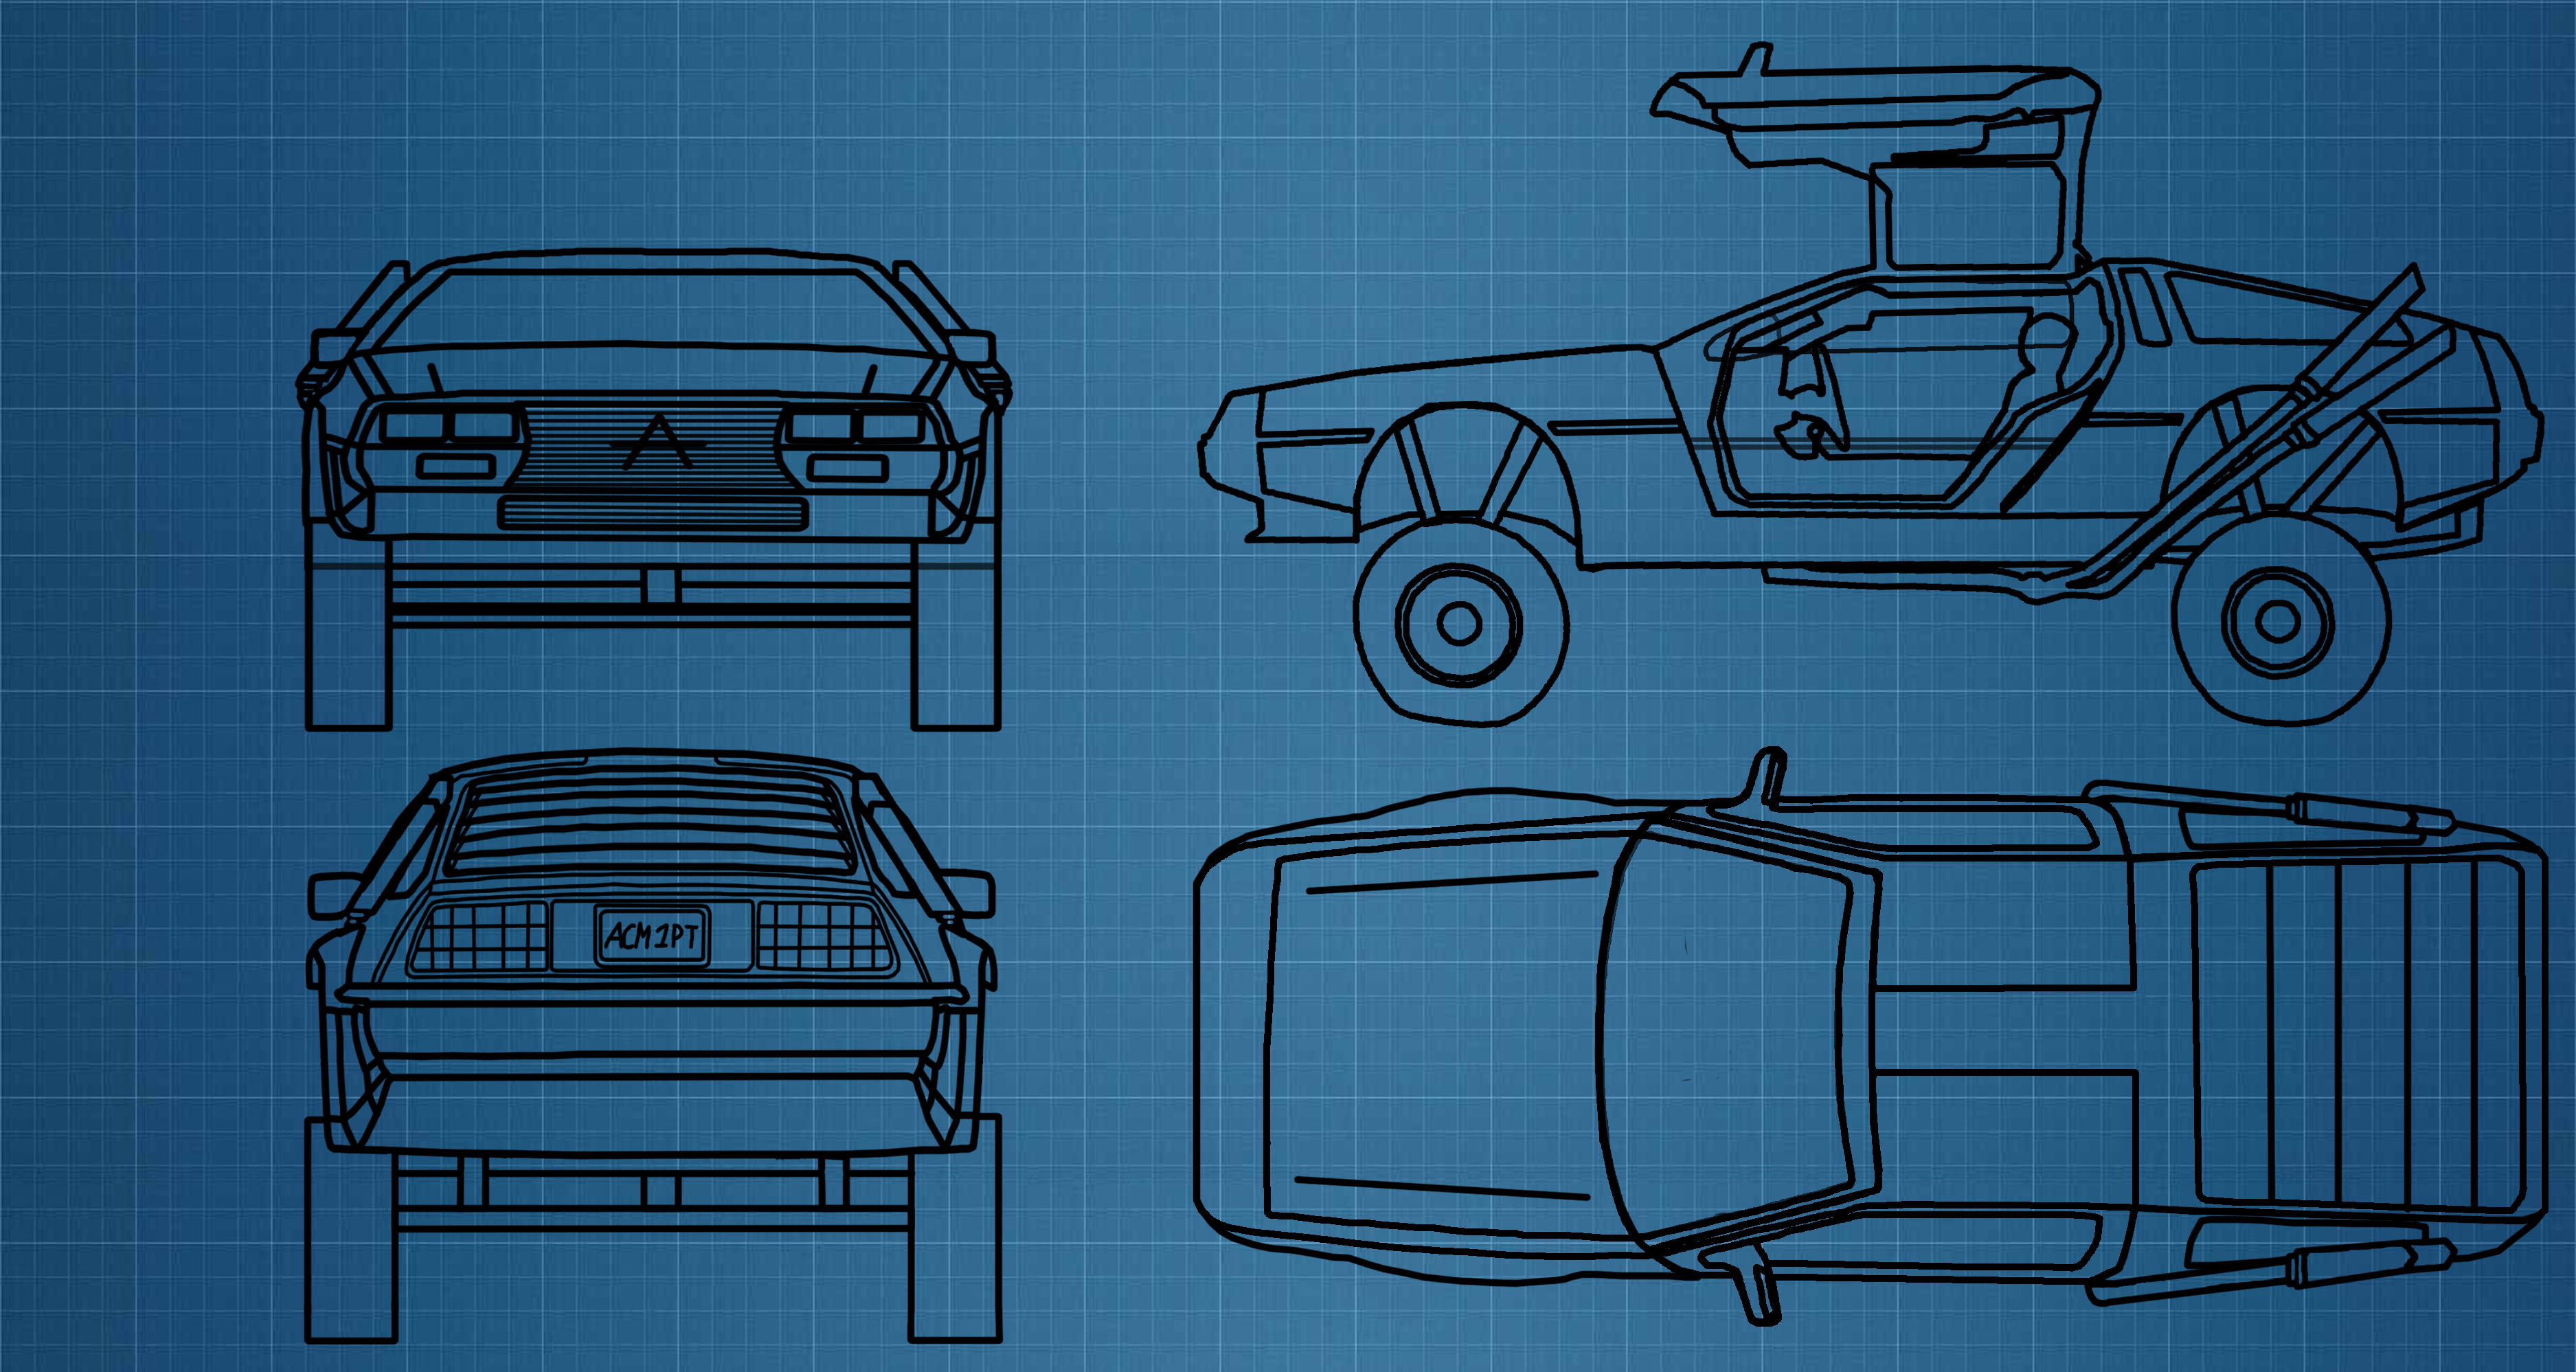 Blue print delorean mad max by mrdaltoniano on deviantart for Where to print blueprints